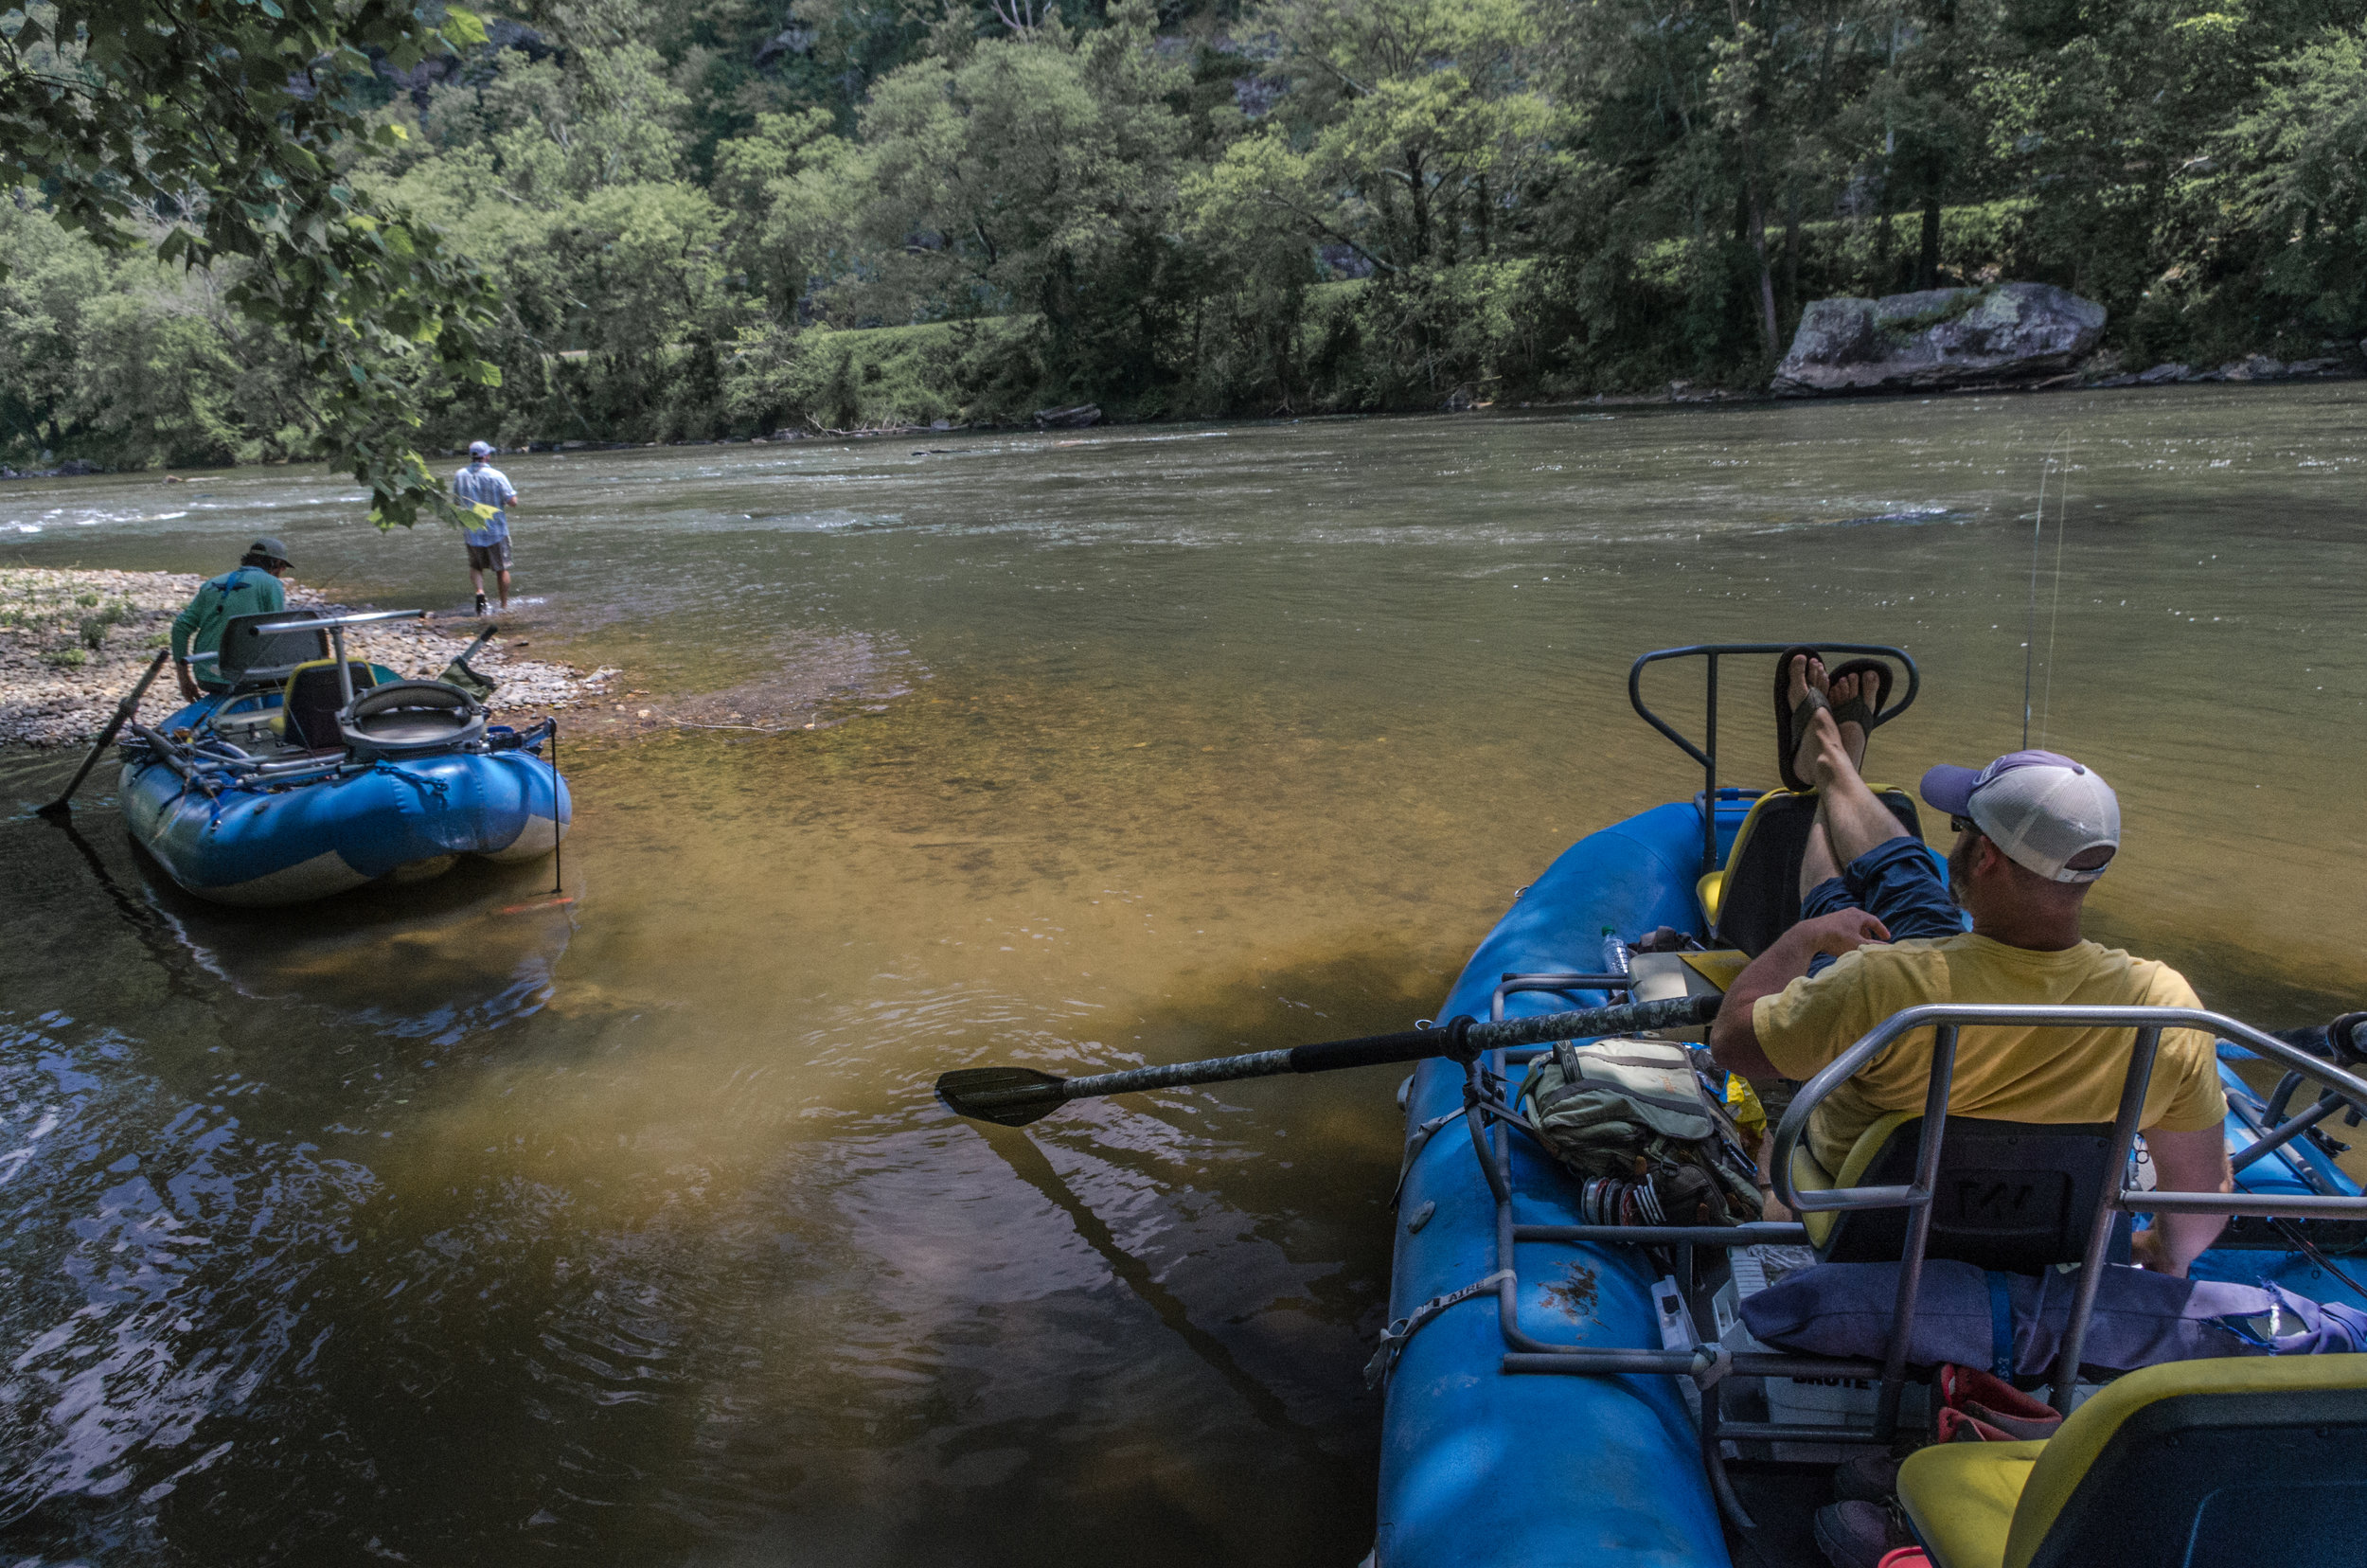 Pull into the shade and take a break from the summer sun on the French Broad River, Asheville, North Carolina